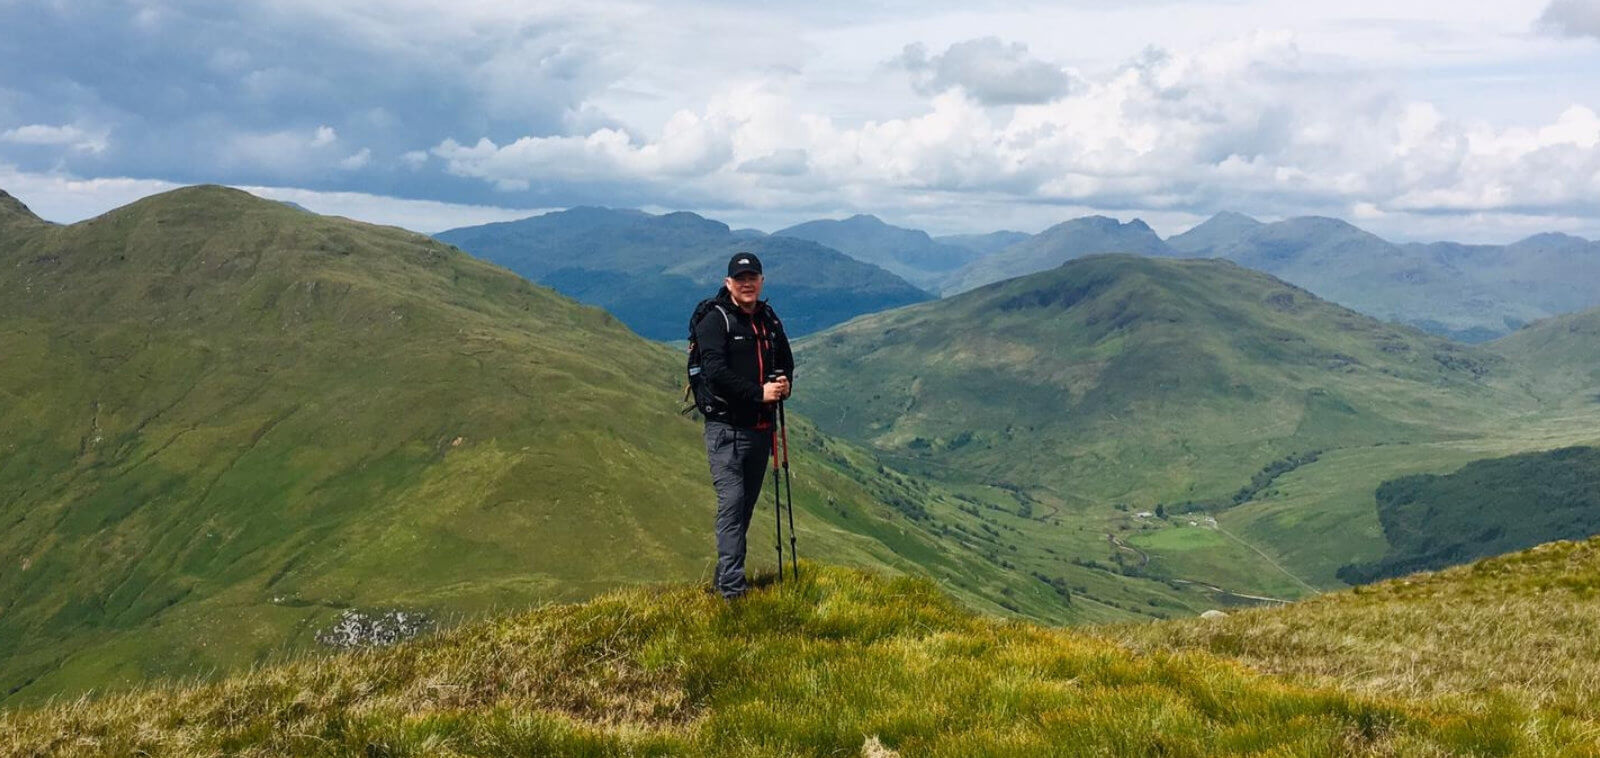 Wrightway Hillwalking - Guide Hill Walking Scotland